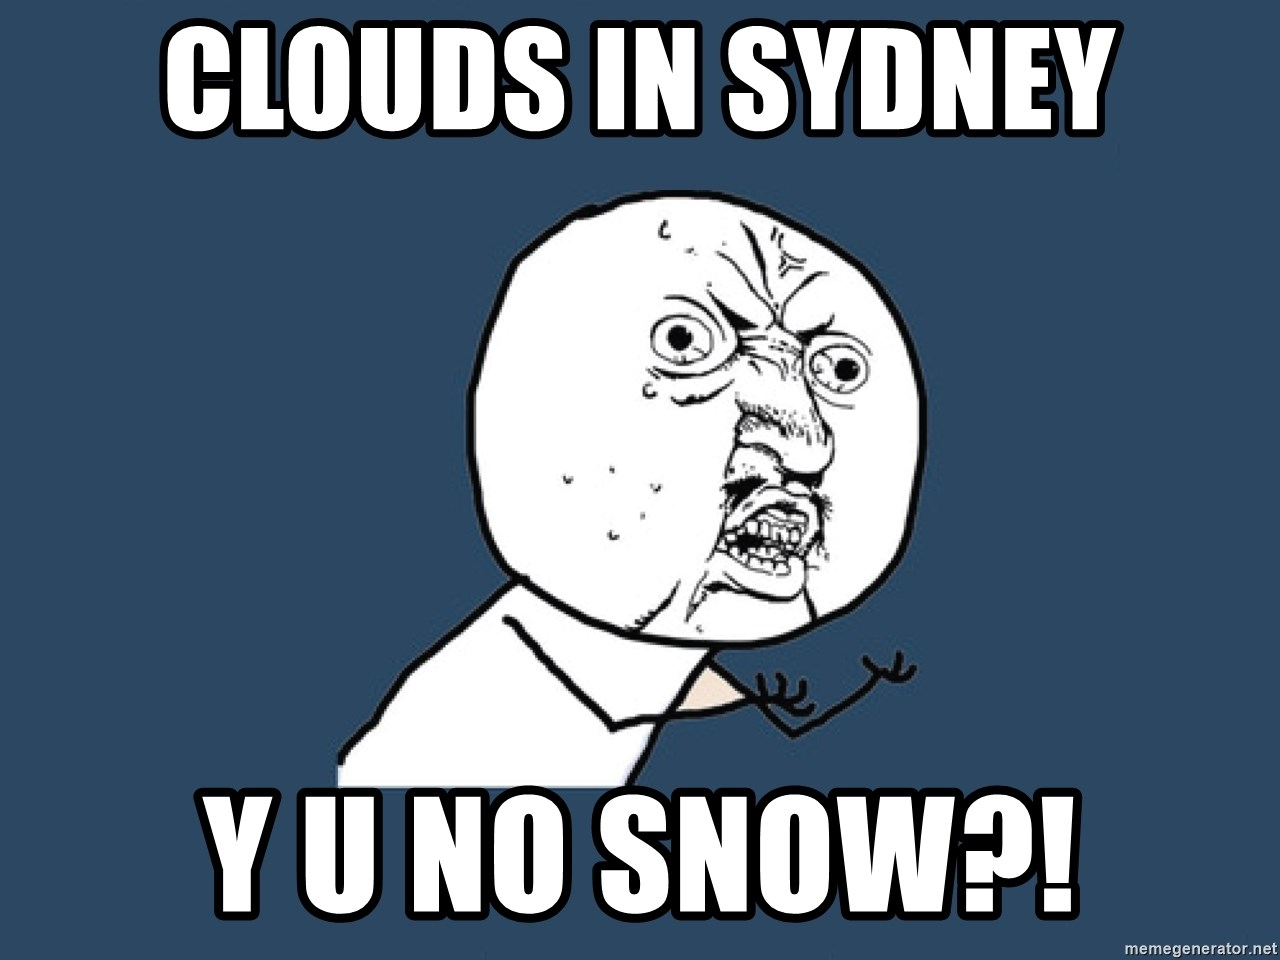 Y U No - Clouds in sydney y u no snow?!